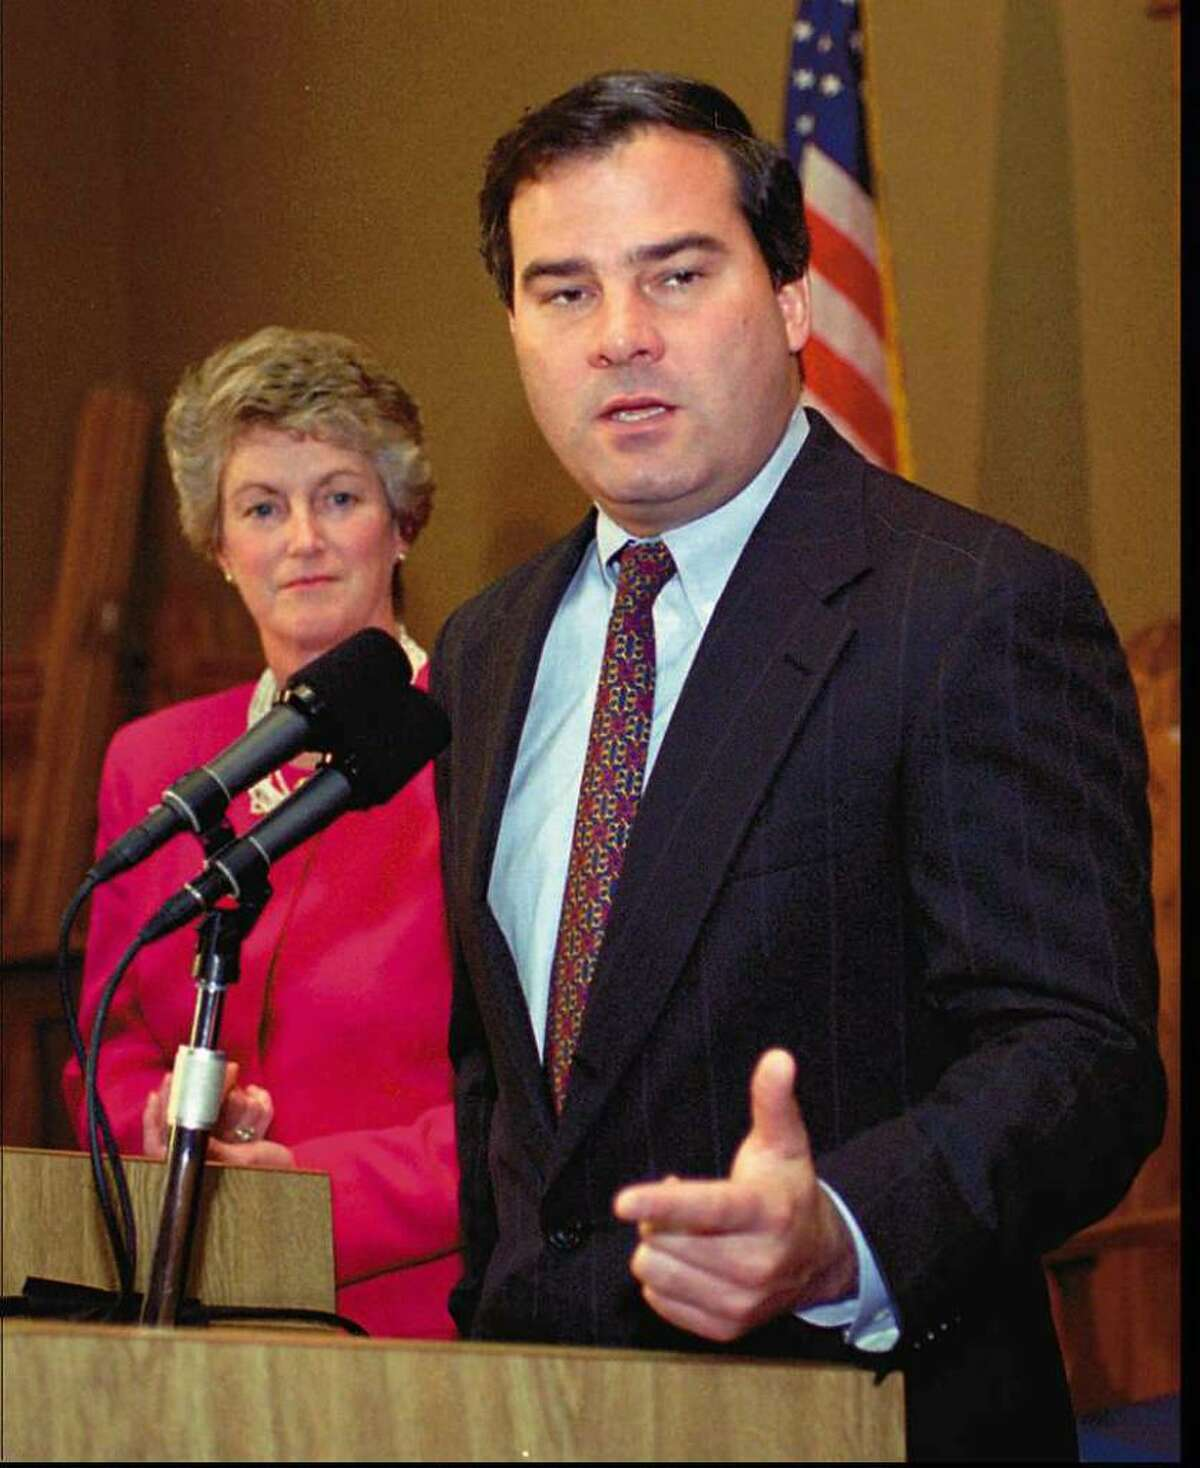 Then Governor-elect John G. Rowland speaks at a news conference at the state capitol in Hartford Wednesday, Nov. 9, 1994, the first day after he won the election. Rowland was 37 at the time. At left is then Lt. Gov.-elect state Rep. Jodi Rell, R-Brookfield. (AP Photo/Bob Child)